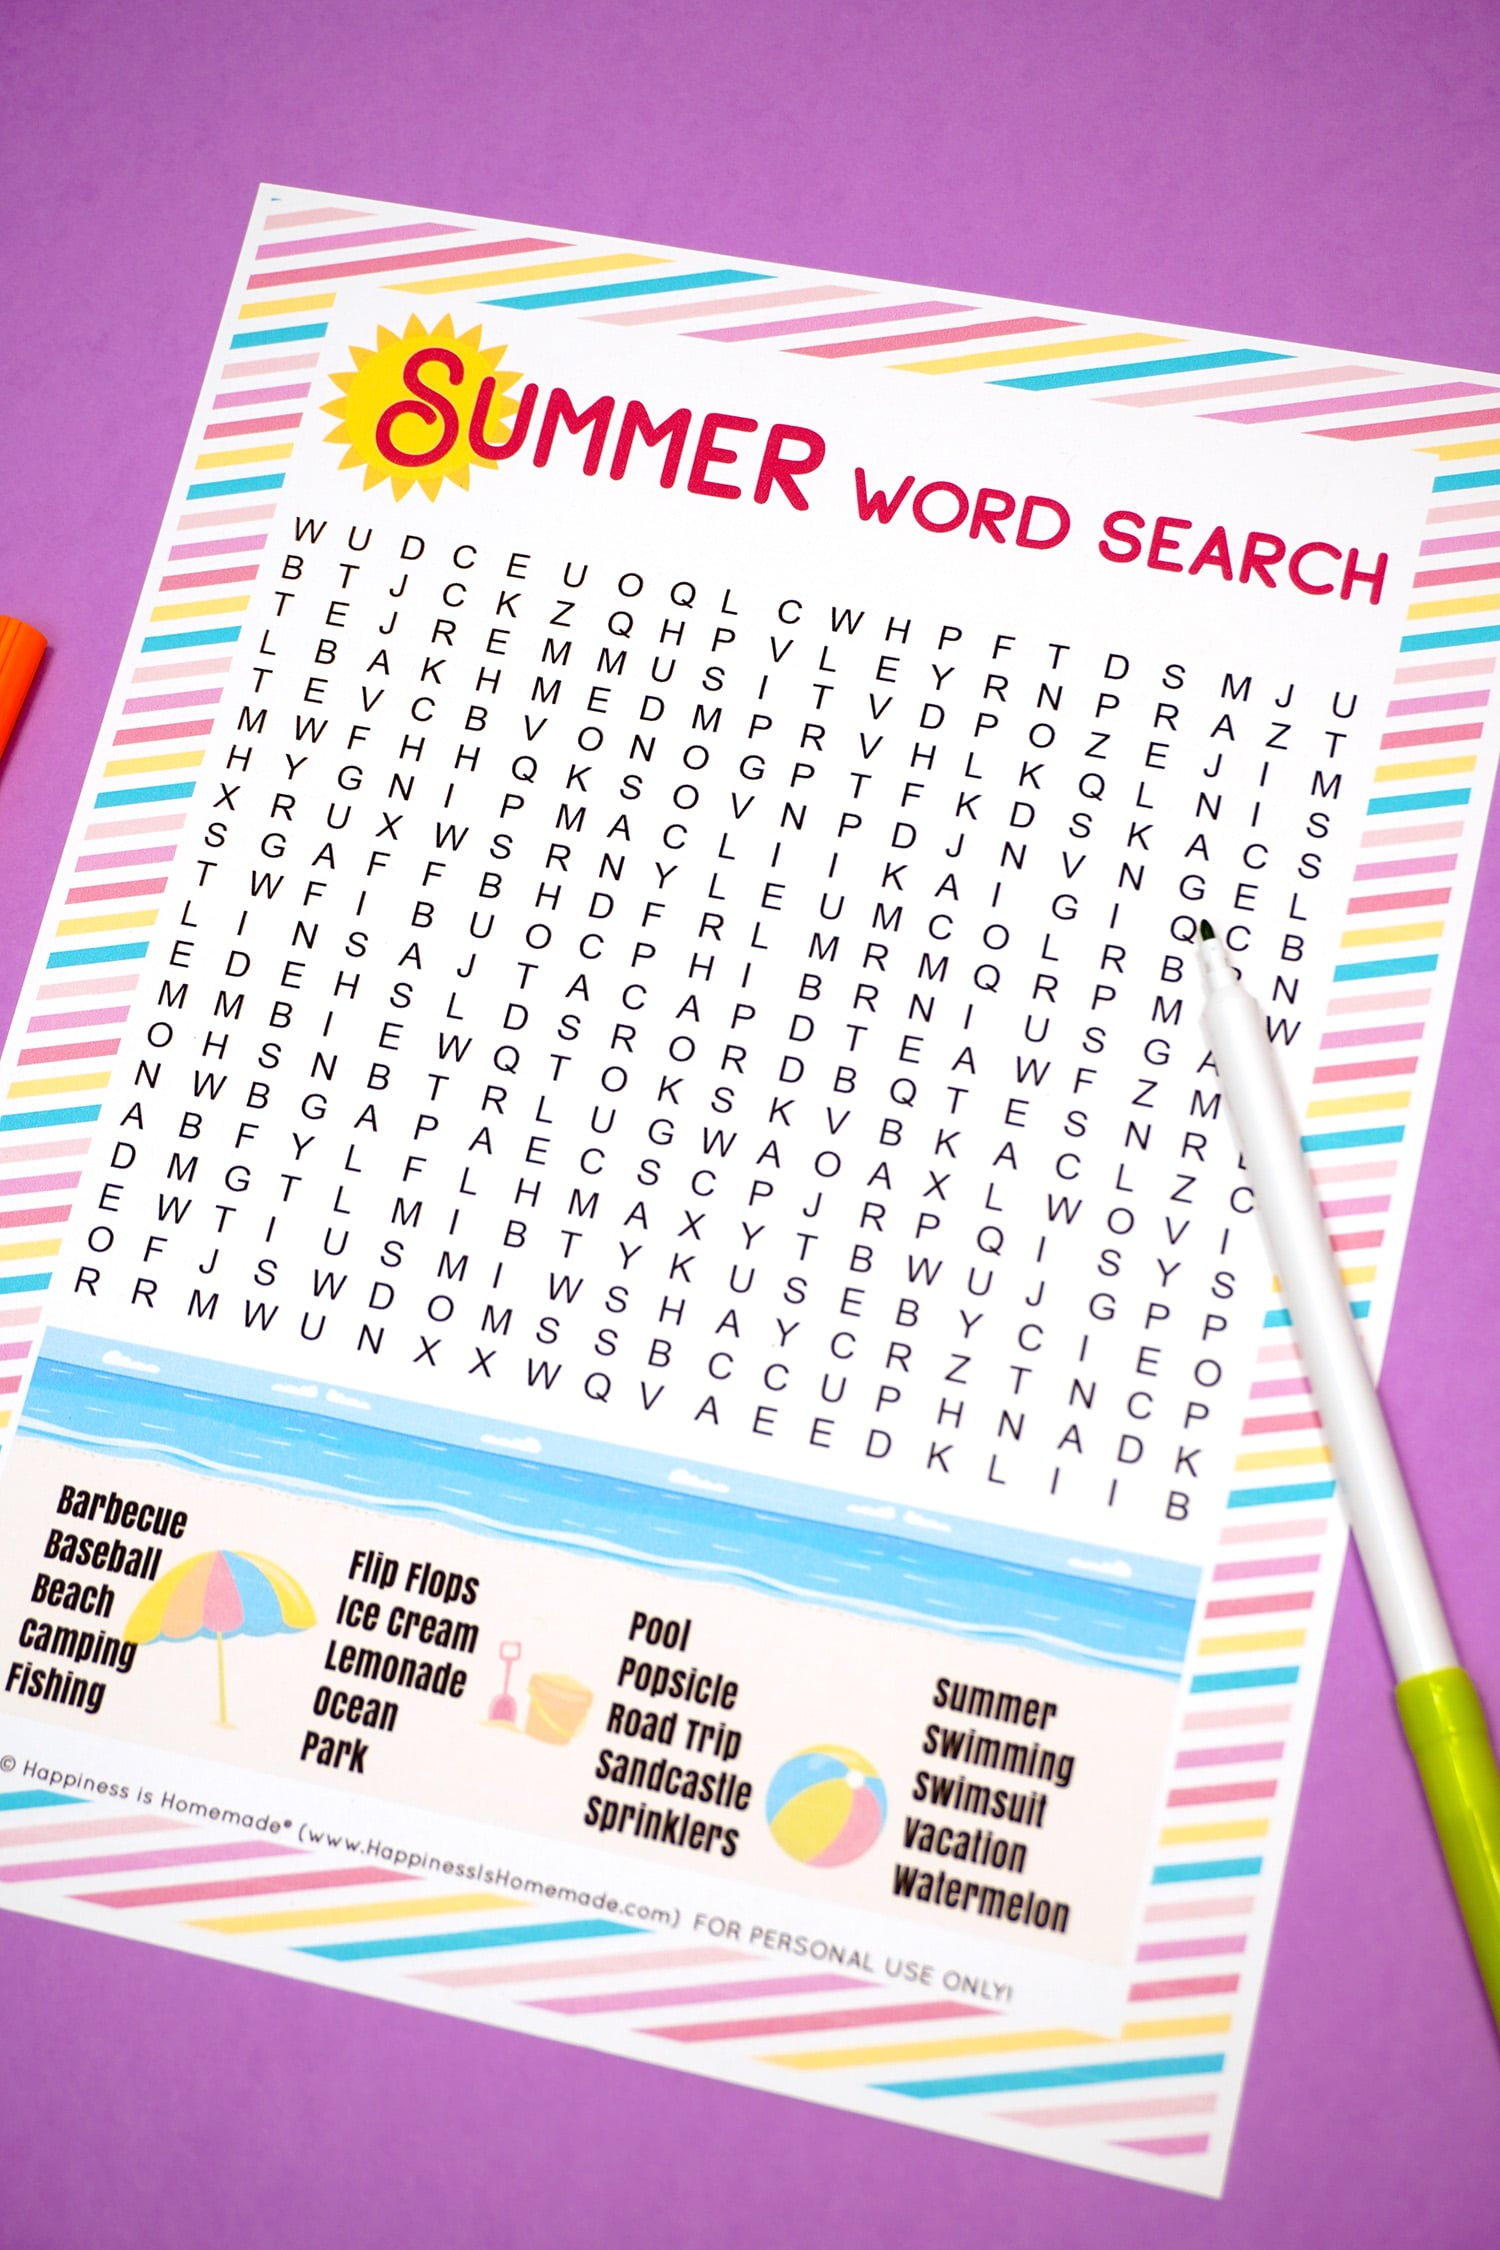 Summer word search on purple background with green marker